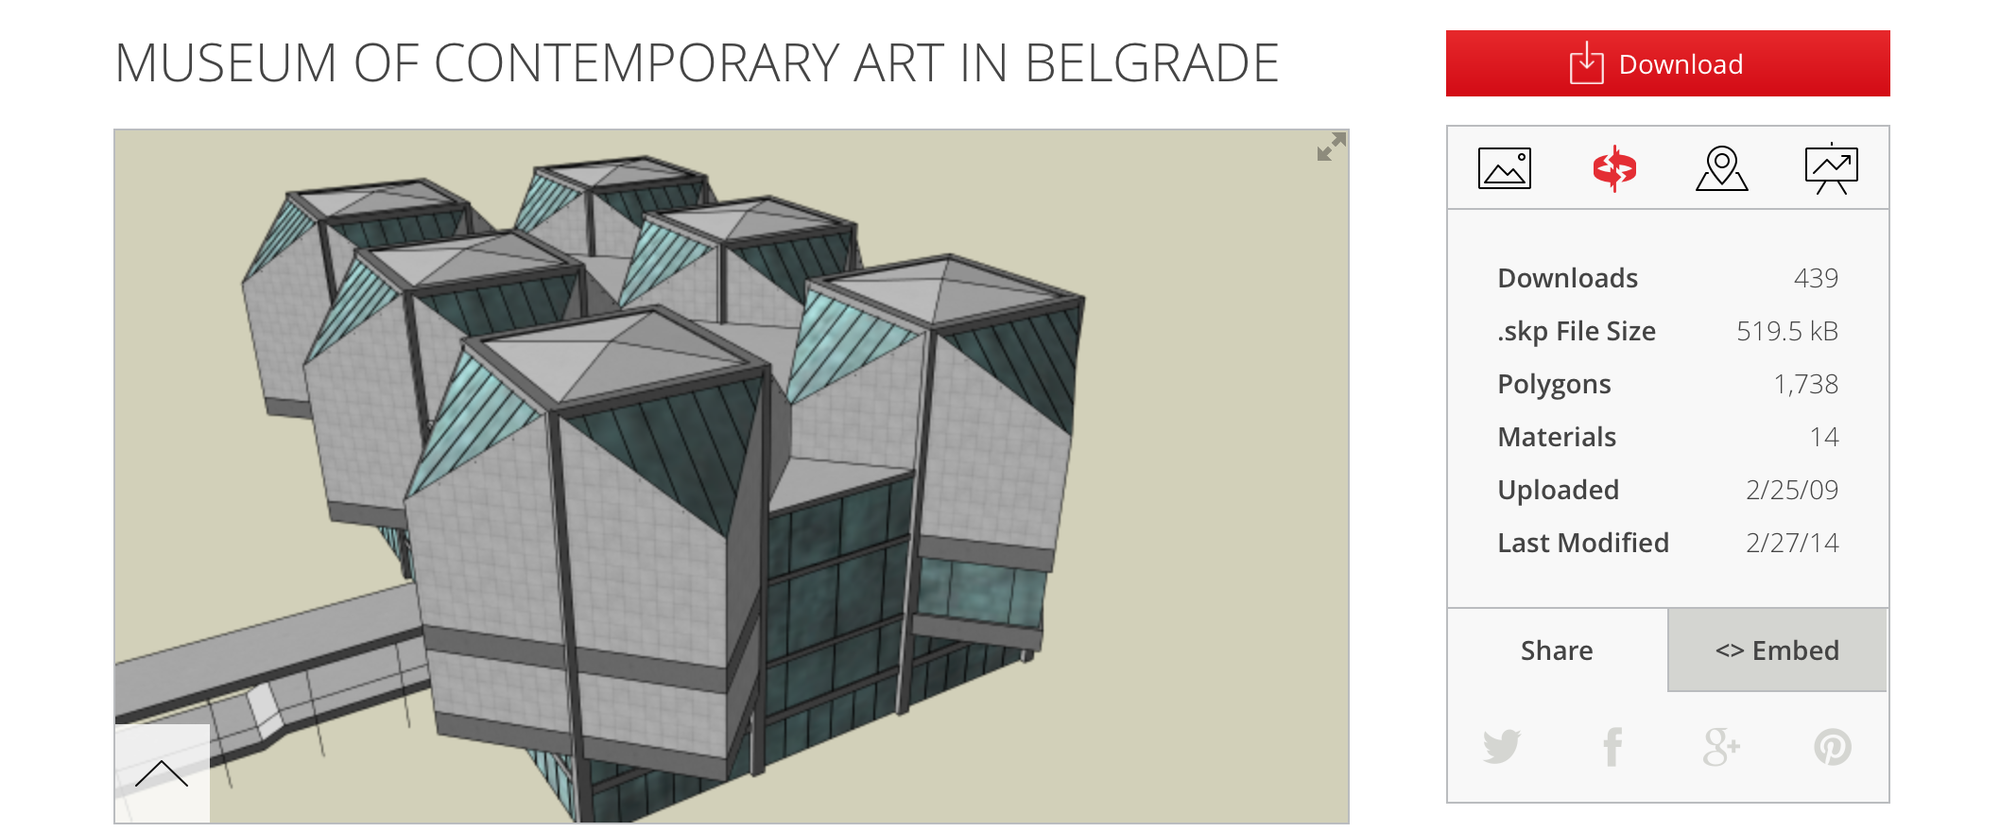 Museum of Contemporary Art in Belgrade / Created by Djordje. Image Courtesy of Trimble